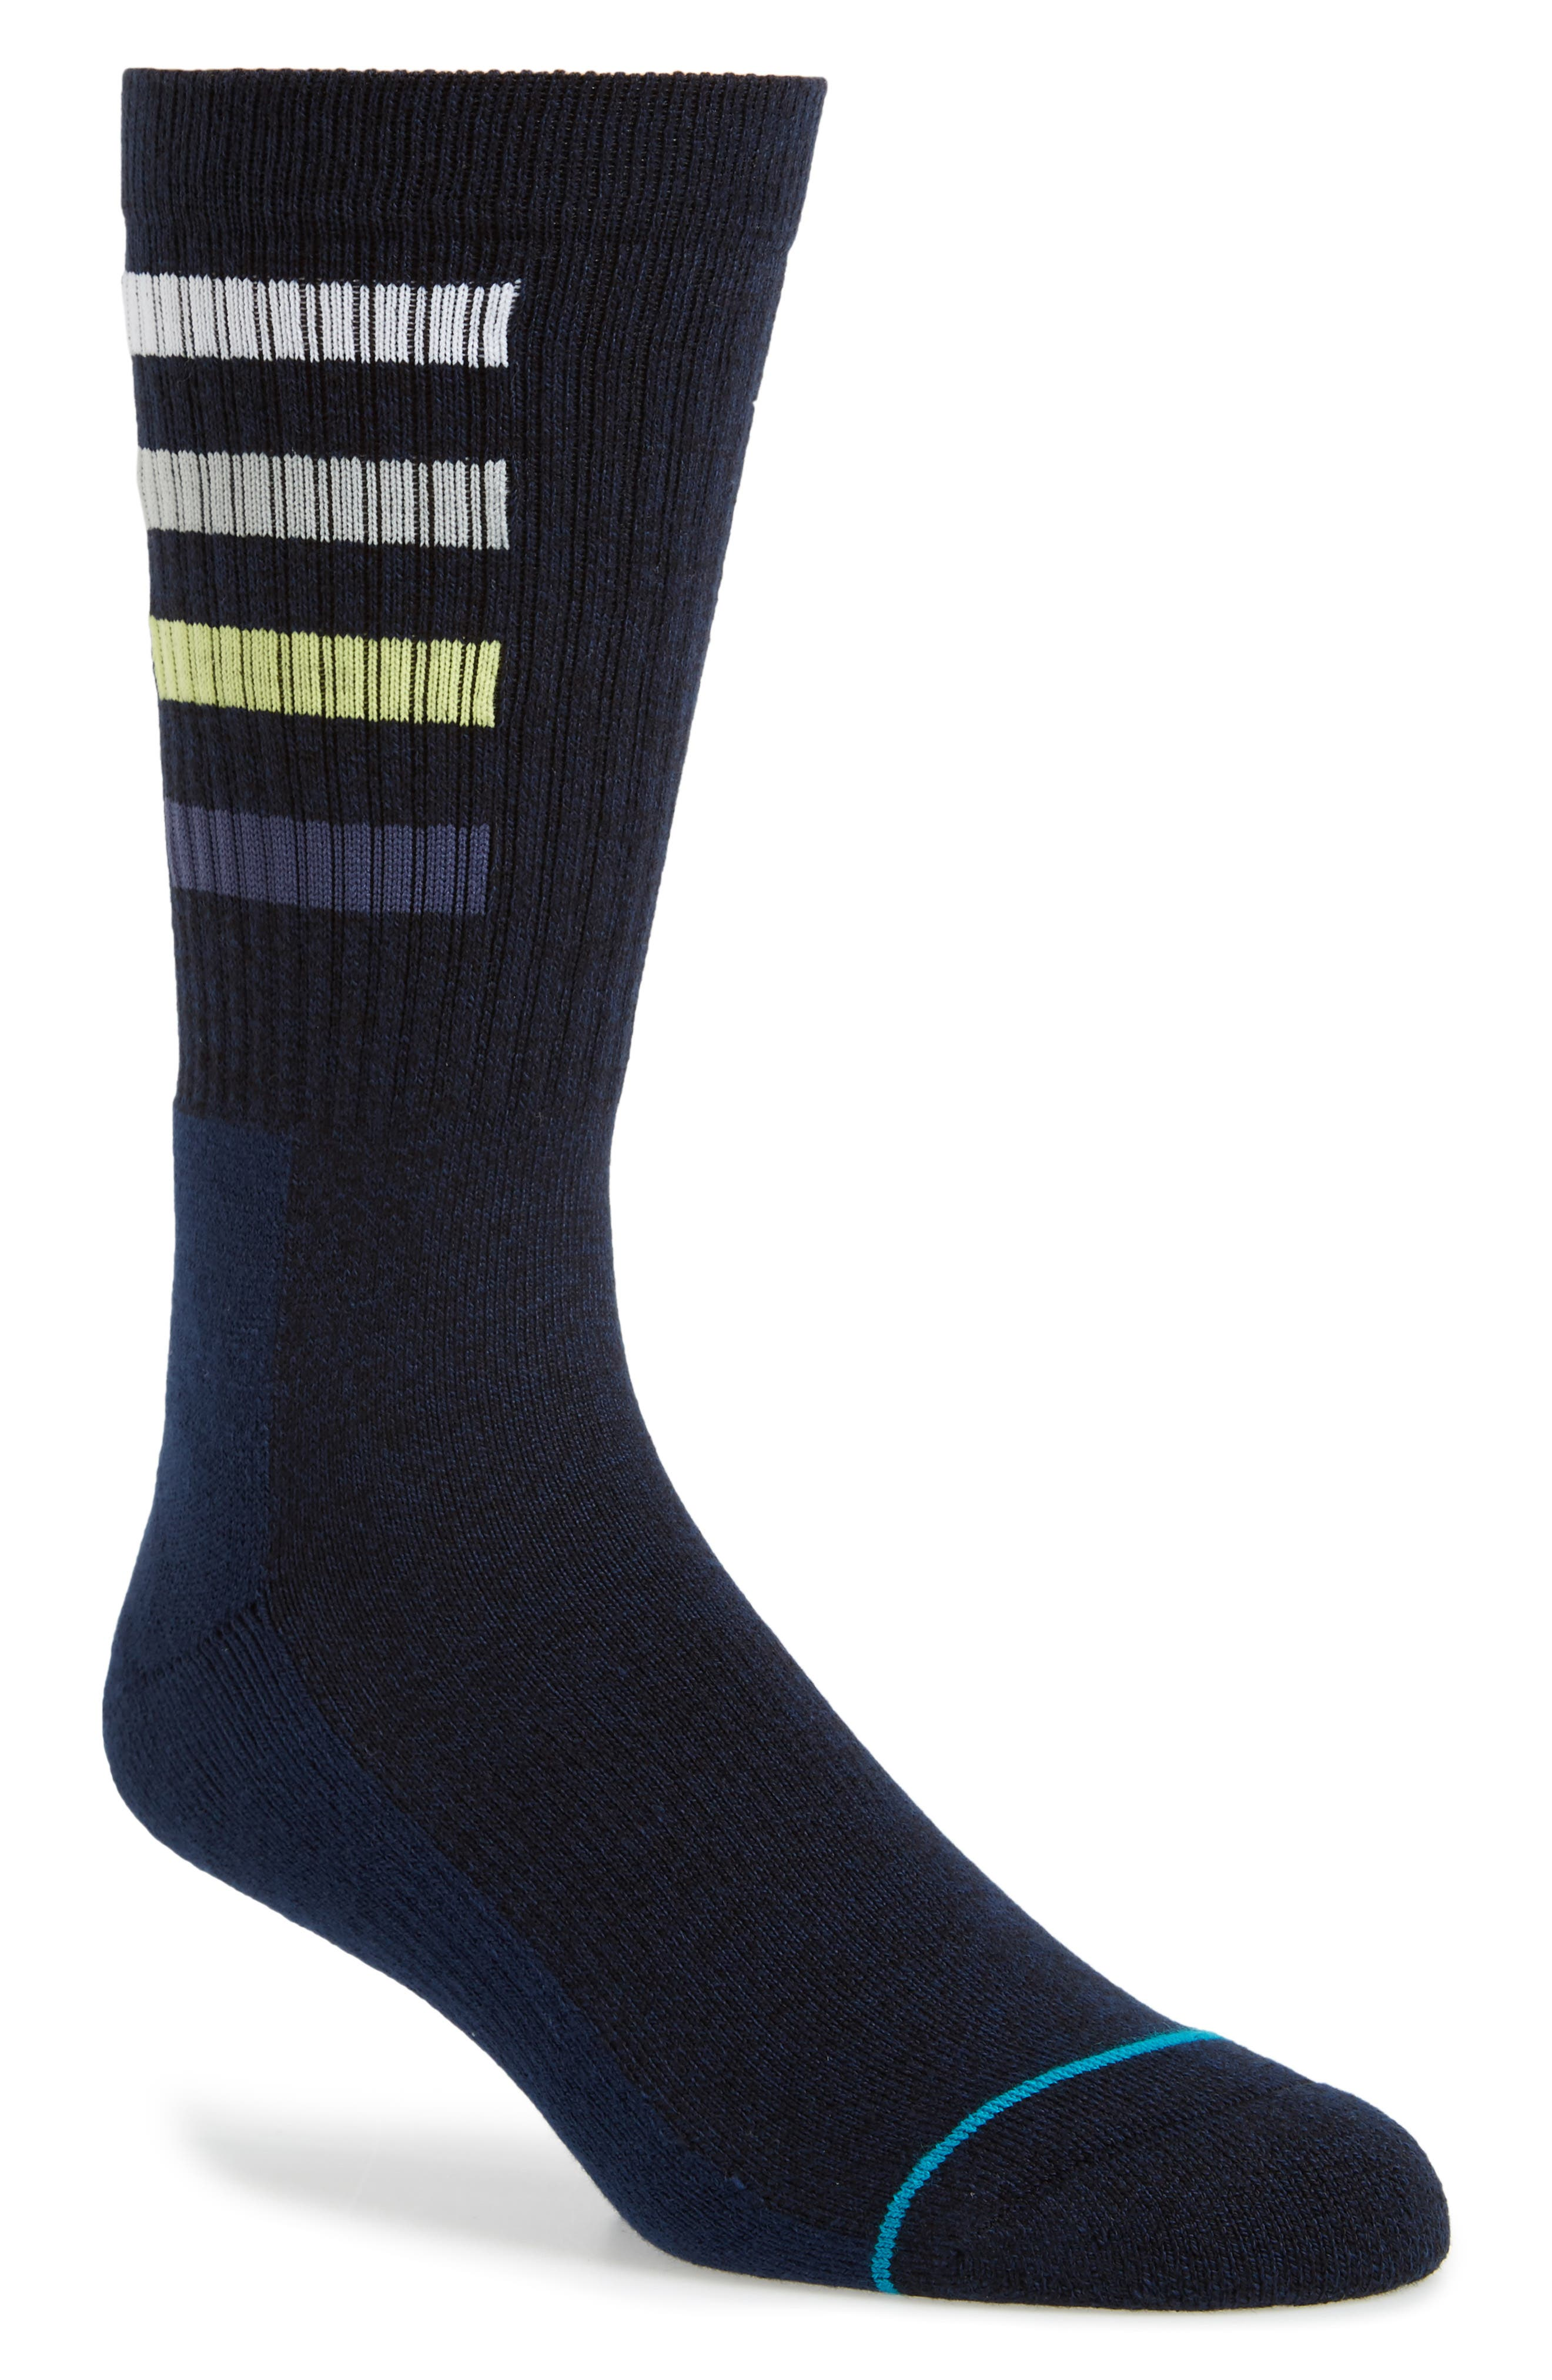 Alternate Image 1 Selected - Stance Croton Crew Socks